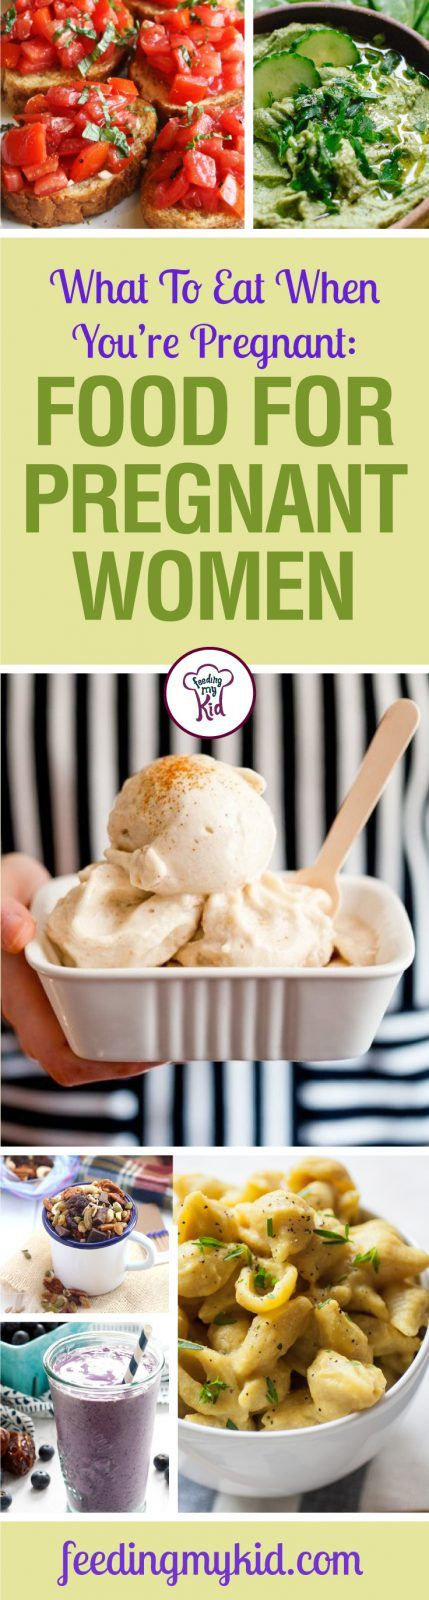 what to eat when you're pregnant food for pregnant women